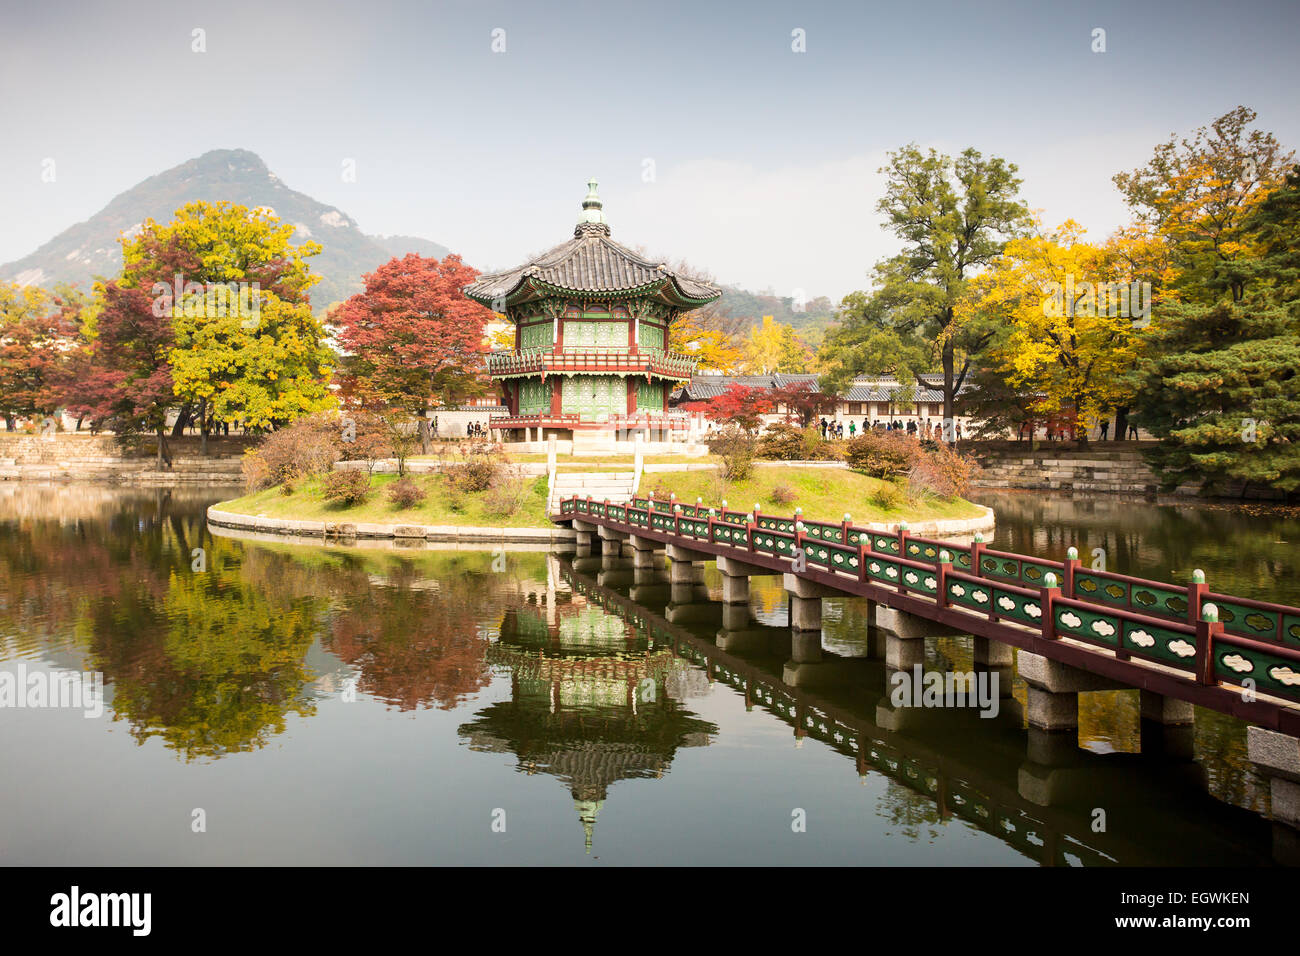 Gyeongbokgung Palace and its grounds on a fine autumn day in Seoul, South Korea. - Stock Image